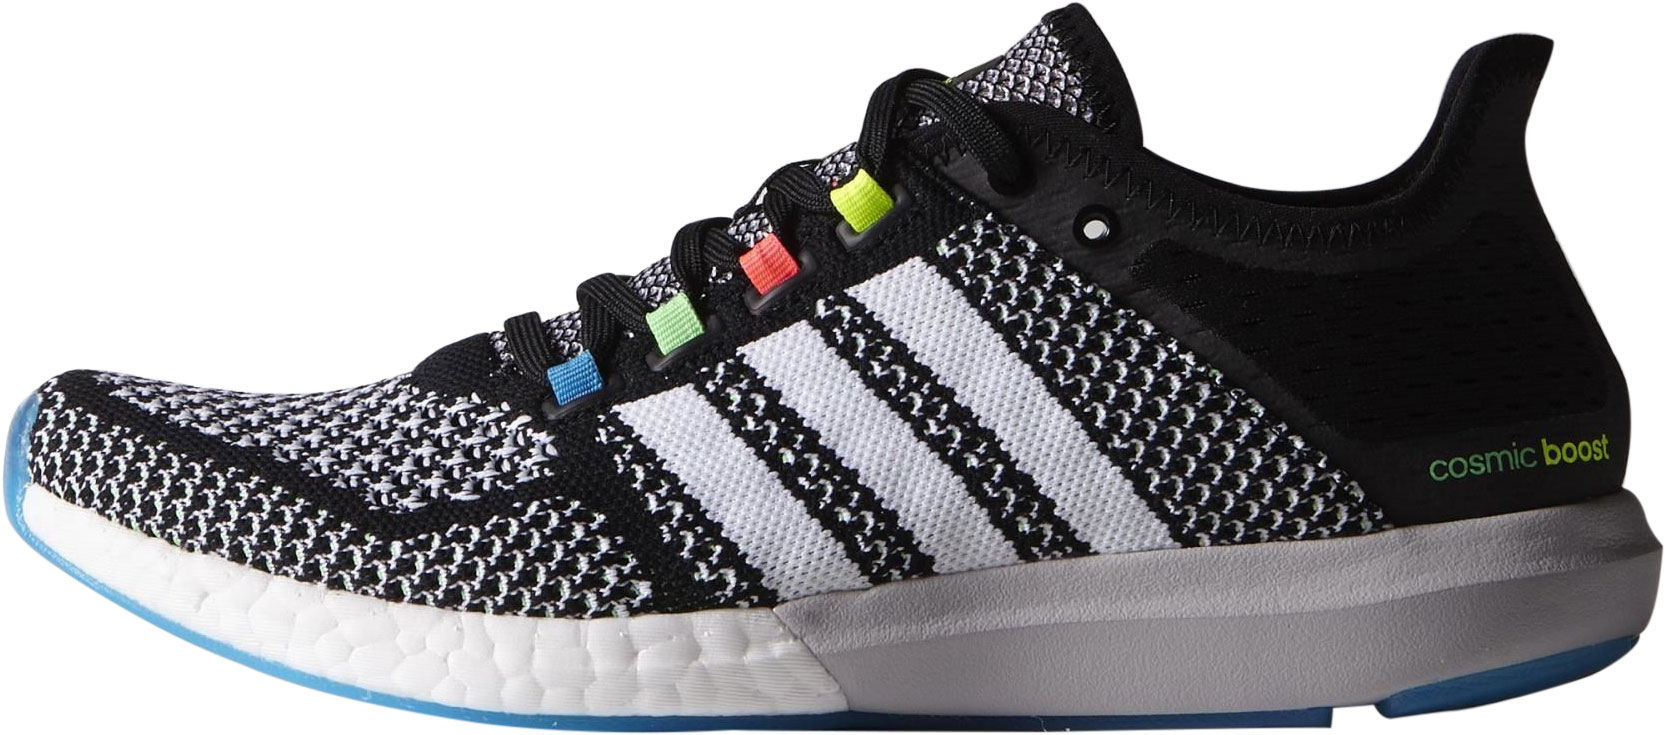 adidas climachill boost shoes